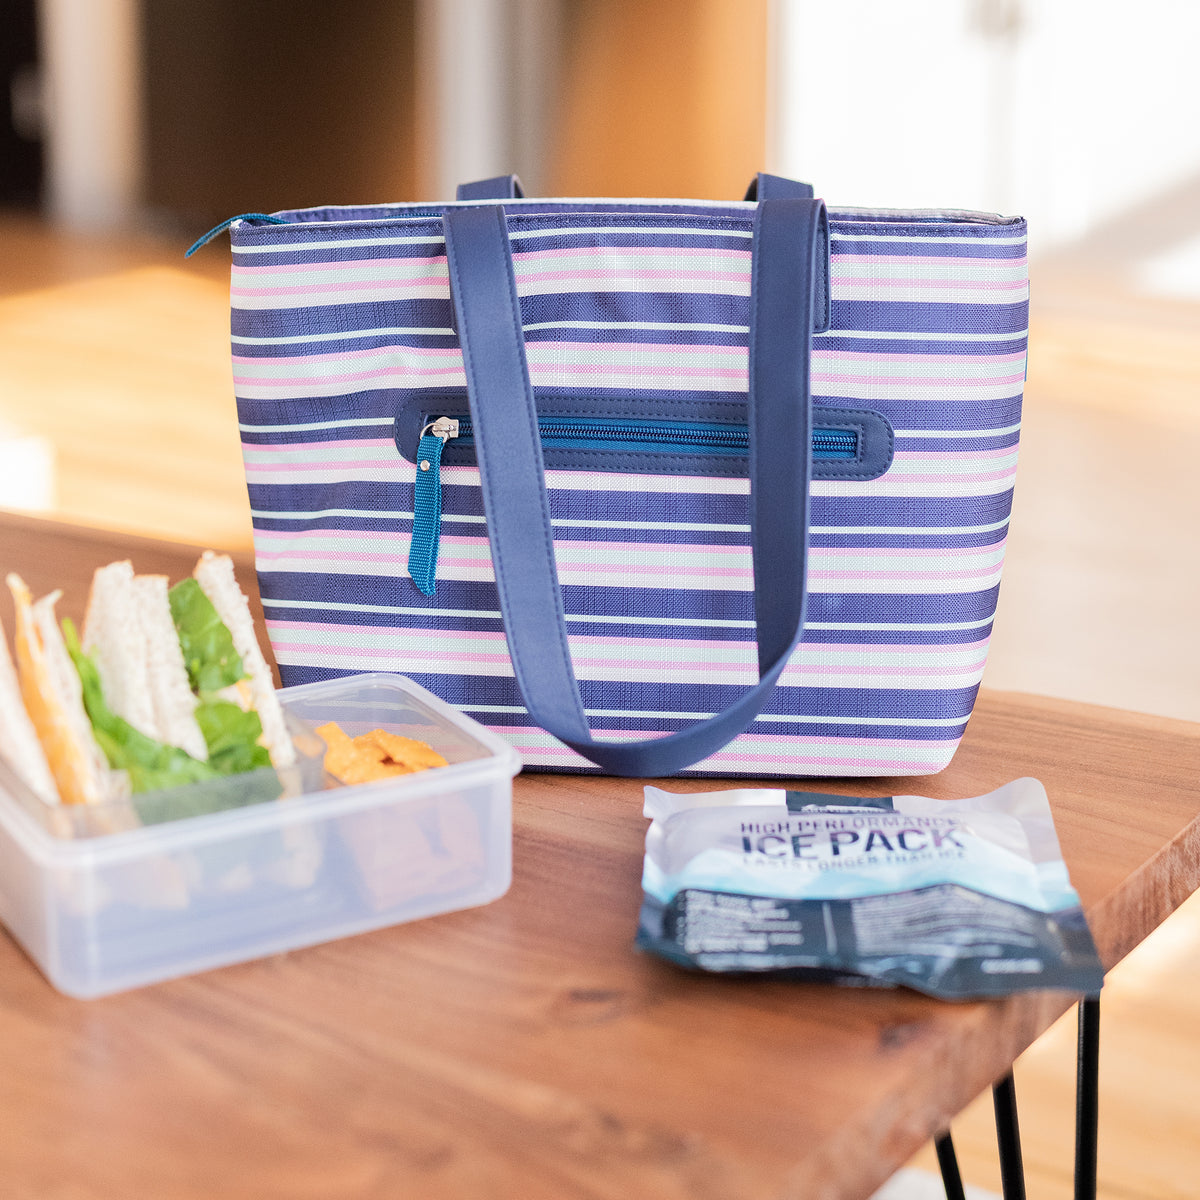 Arctic Zone® Bennet Tote - Mixed Stripes - Lifestyle, packing up lunch